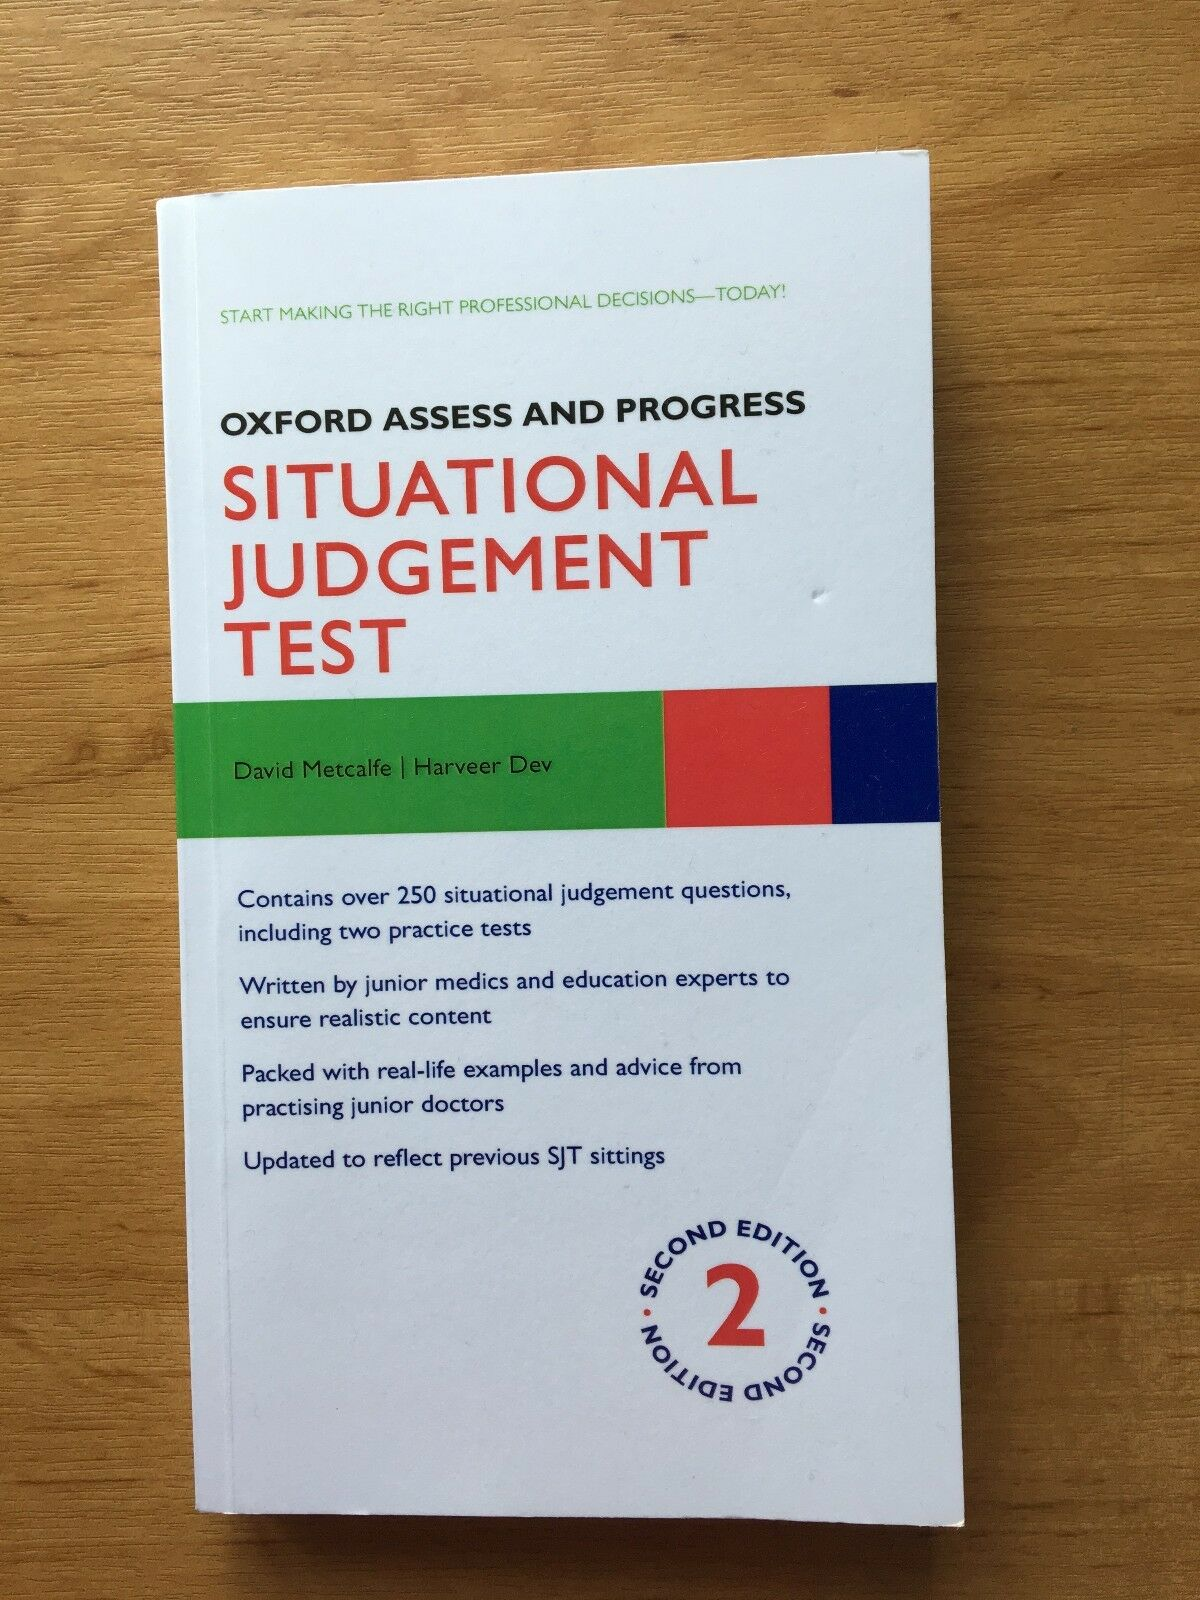 Oxford Assess and Progress: Situational Judgement Test by David Metcalfe,  Harveer Dev (Paperback, 2013)